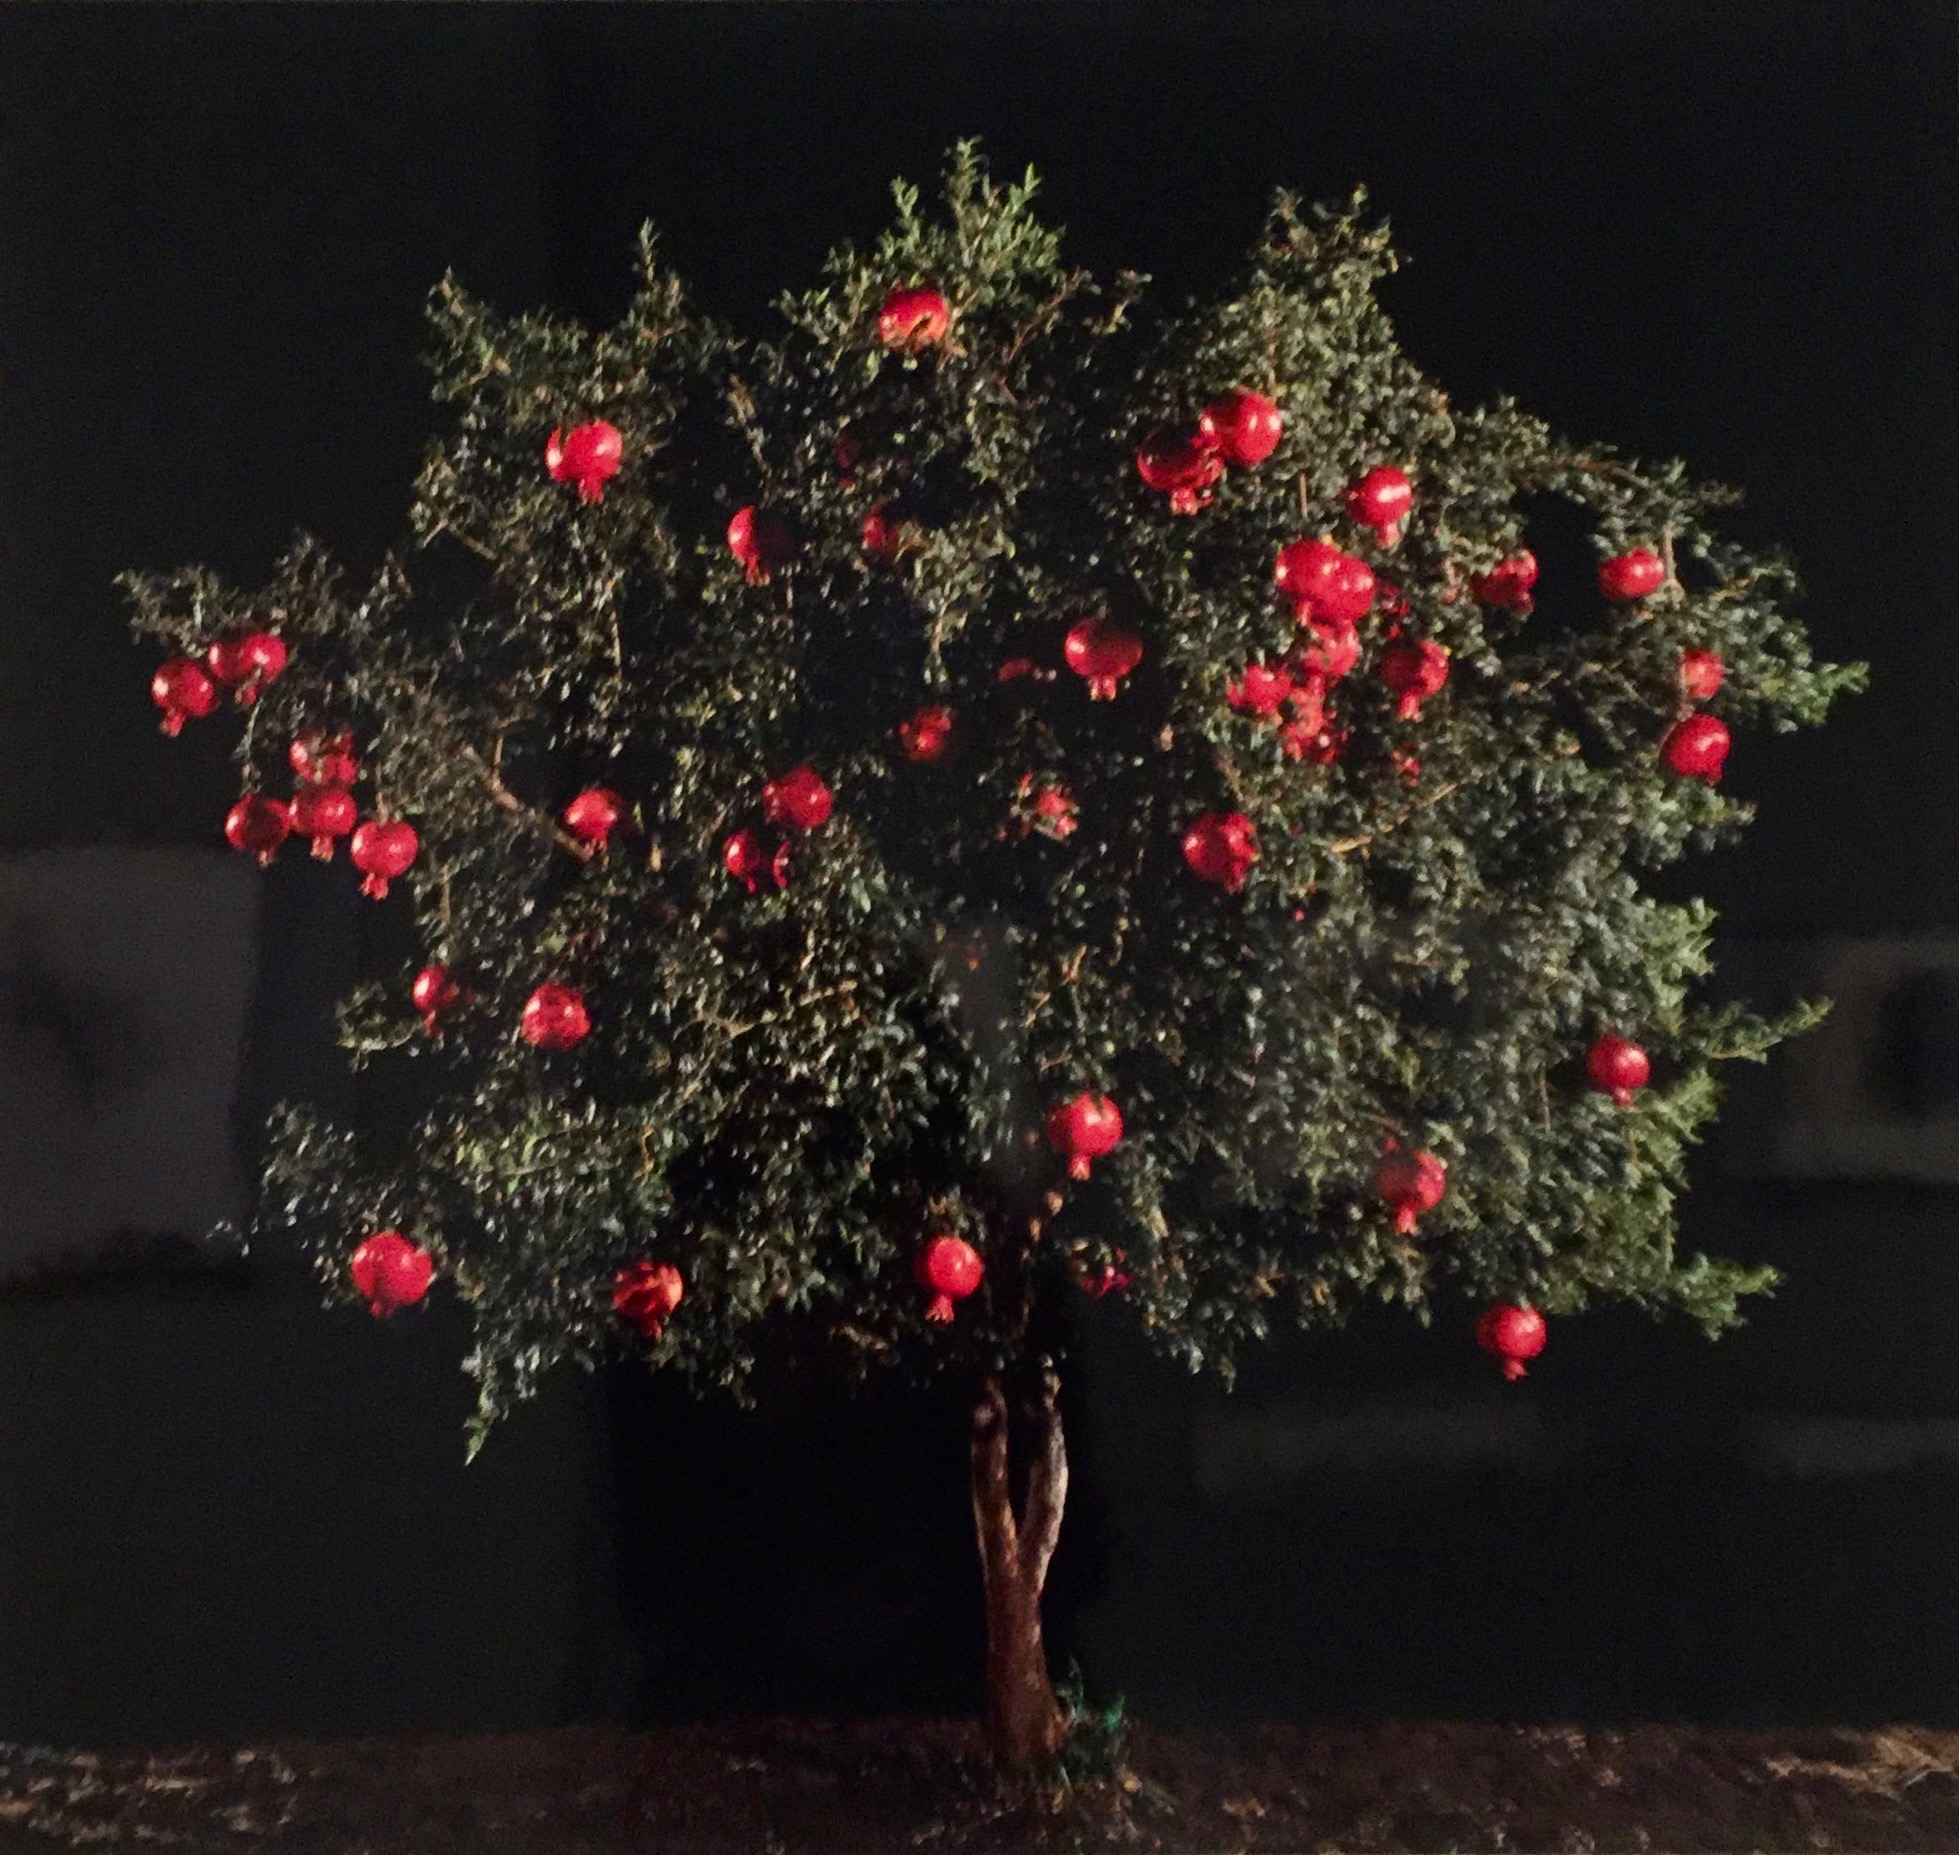 Pomegranate And Persimmon, Tal Shochat, 1974, Into The Woods, Vu0026A.